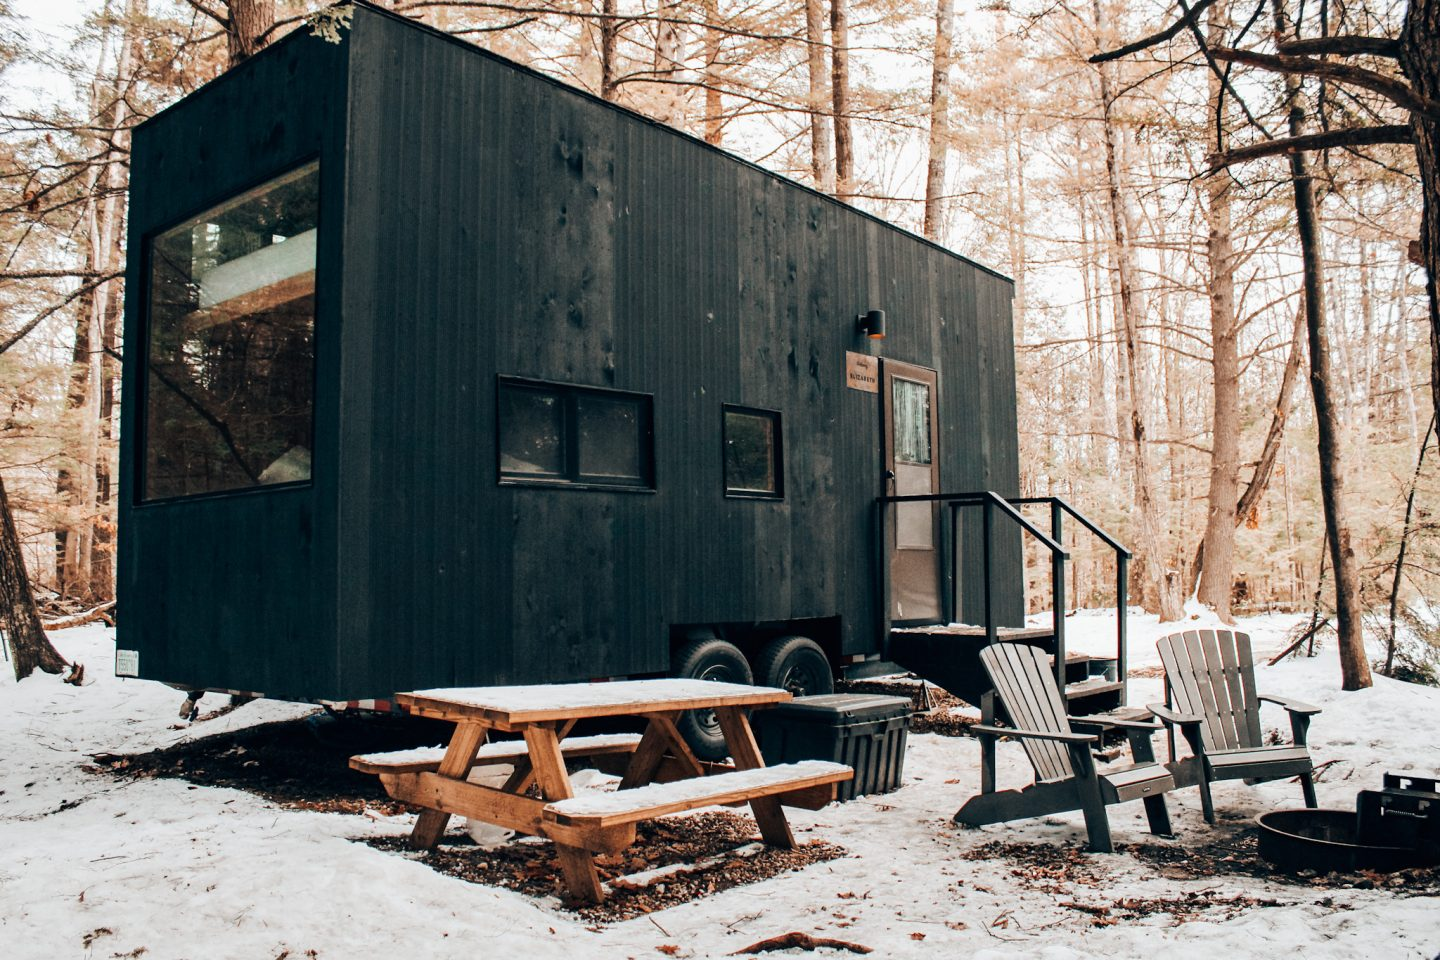 A 4-person Getaway House (see the bunks?)